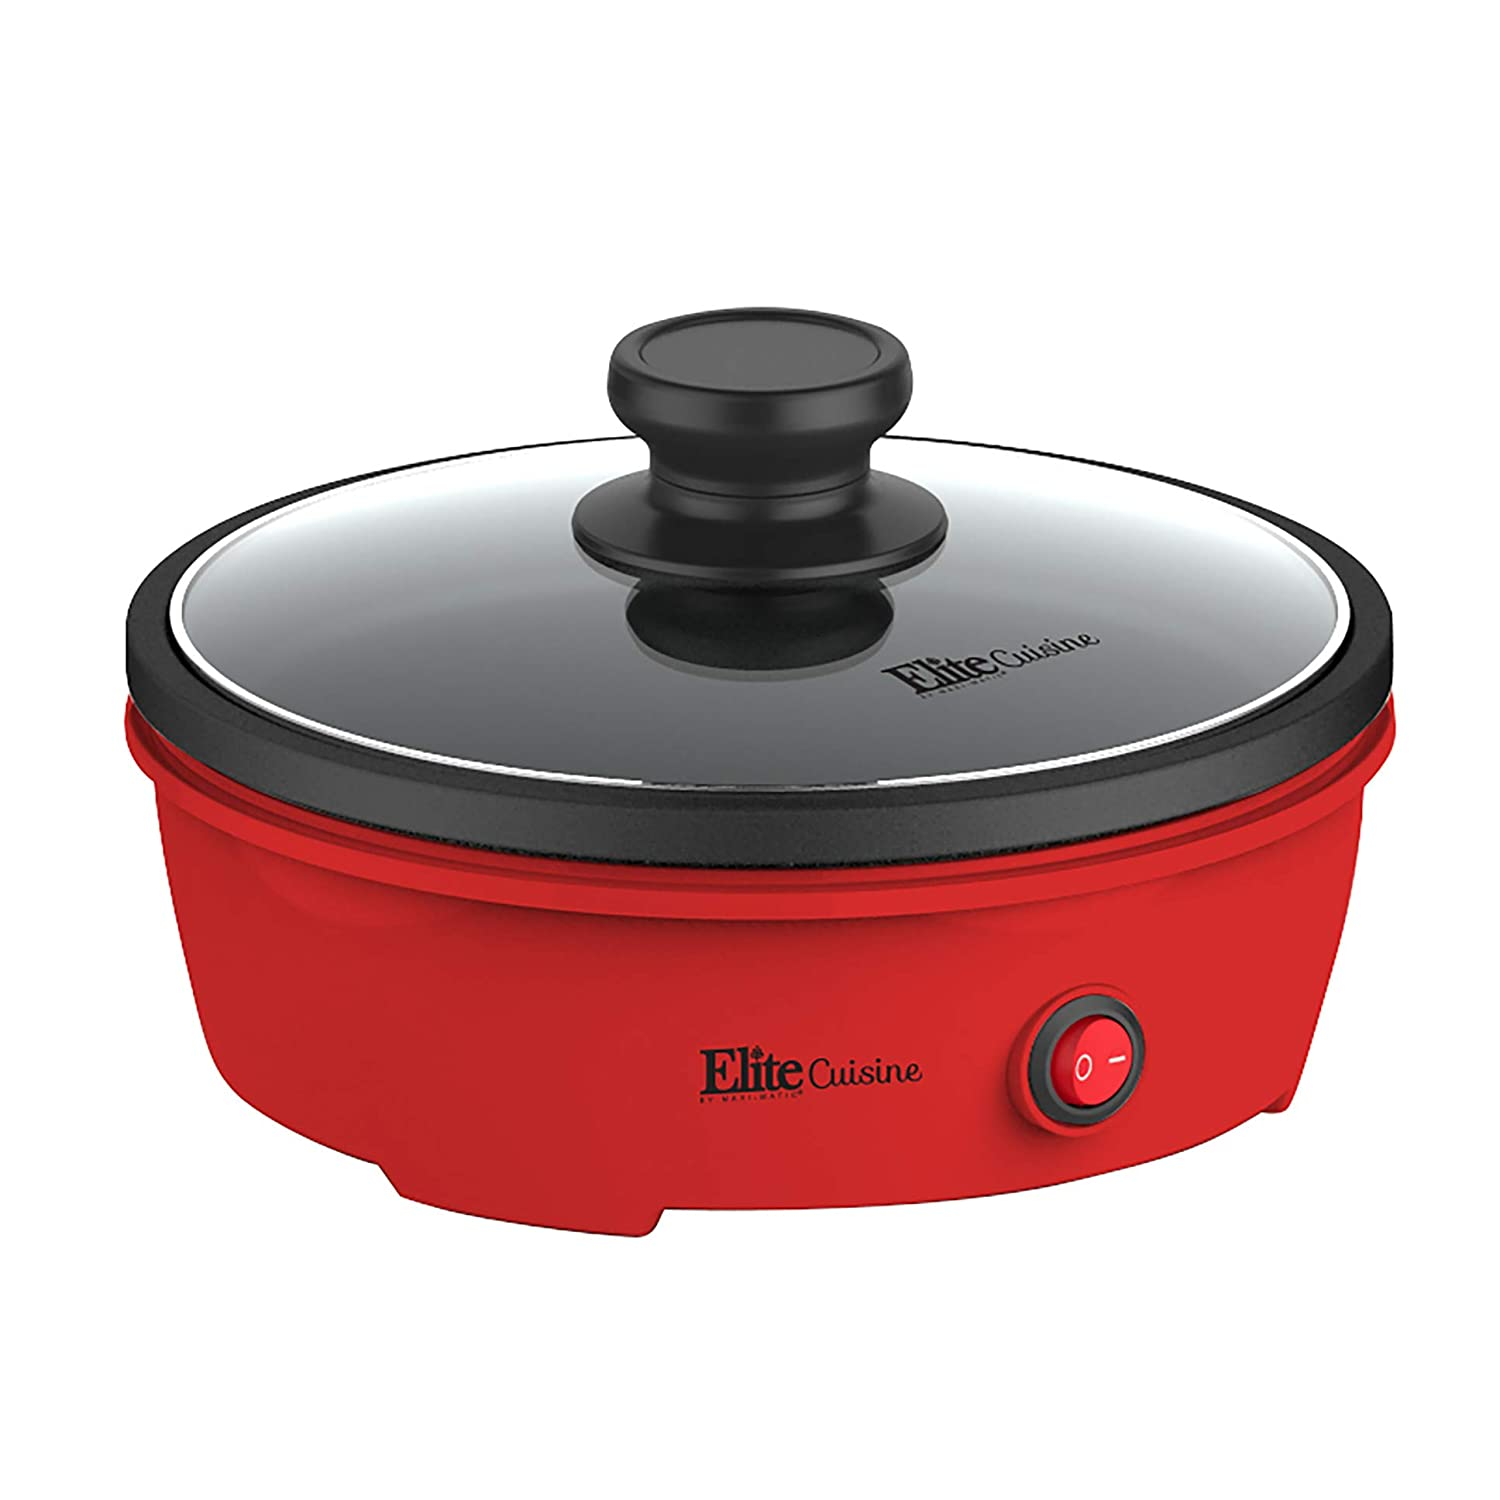 Elite Cuisine EGL-6101 Electric Personal Nonstick Stir Fry Griddle Pan Skillet with Tempered Glass Lid, On/Off Switch, Indicator Light 8.5 inch Red